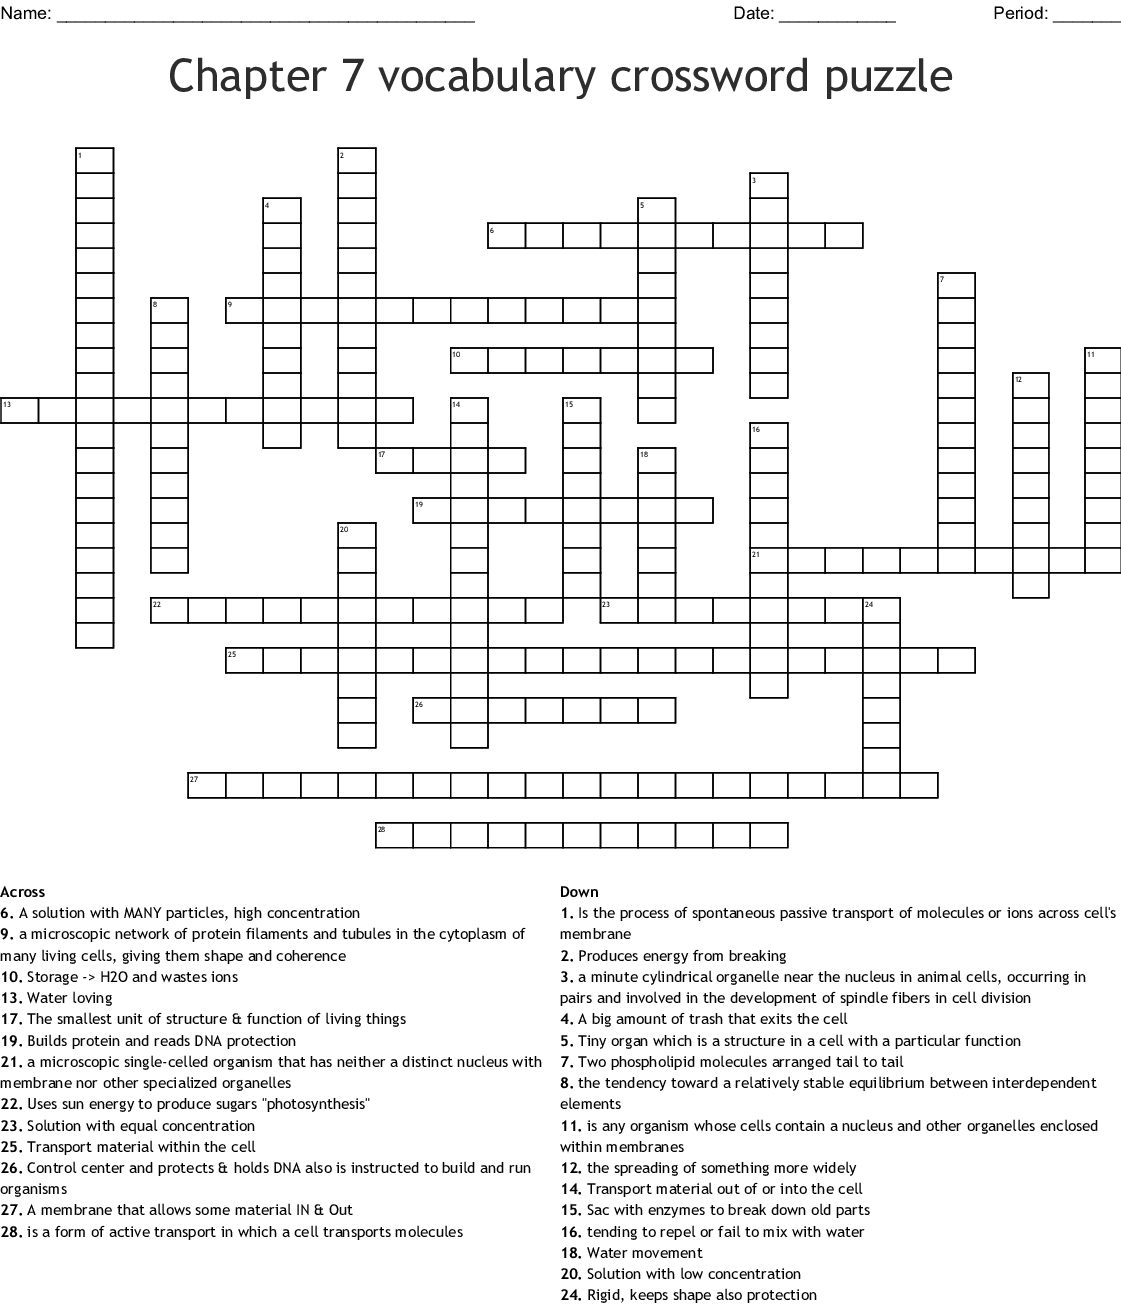 Chapter 7 Urinary System Crossword Puzzle Answers